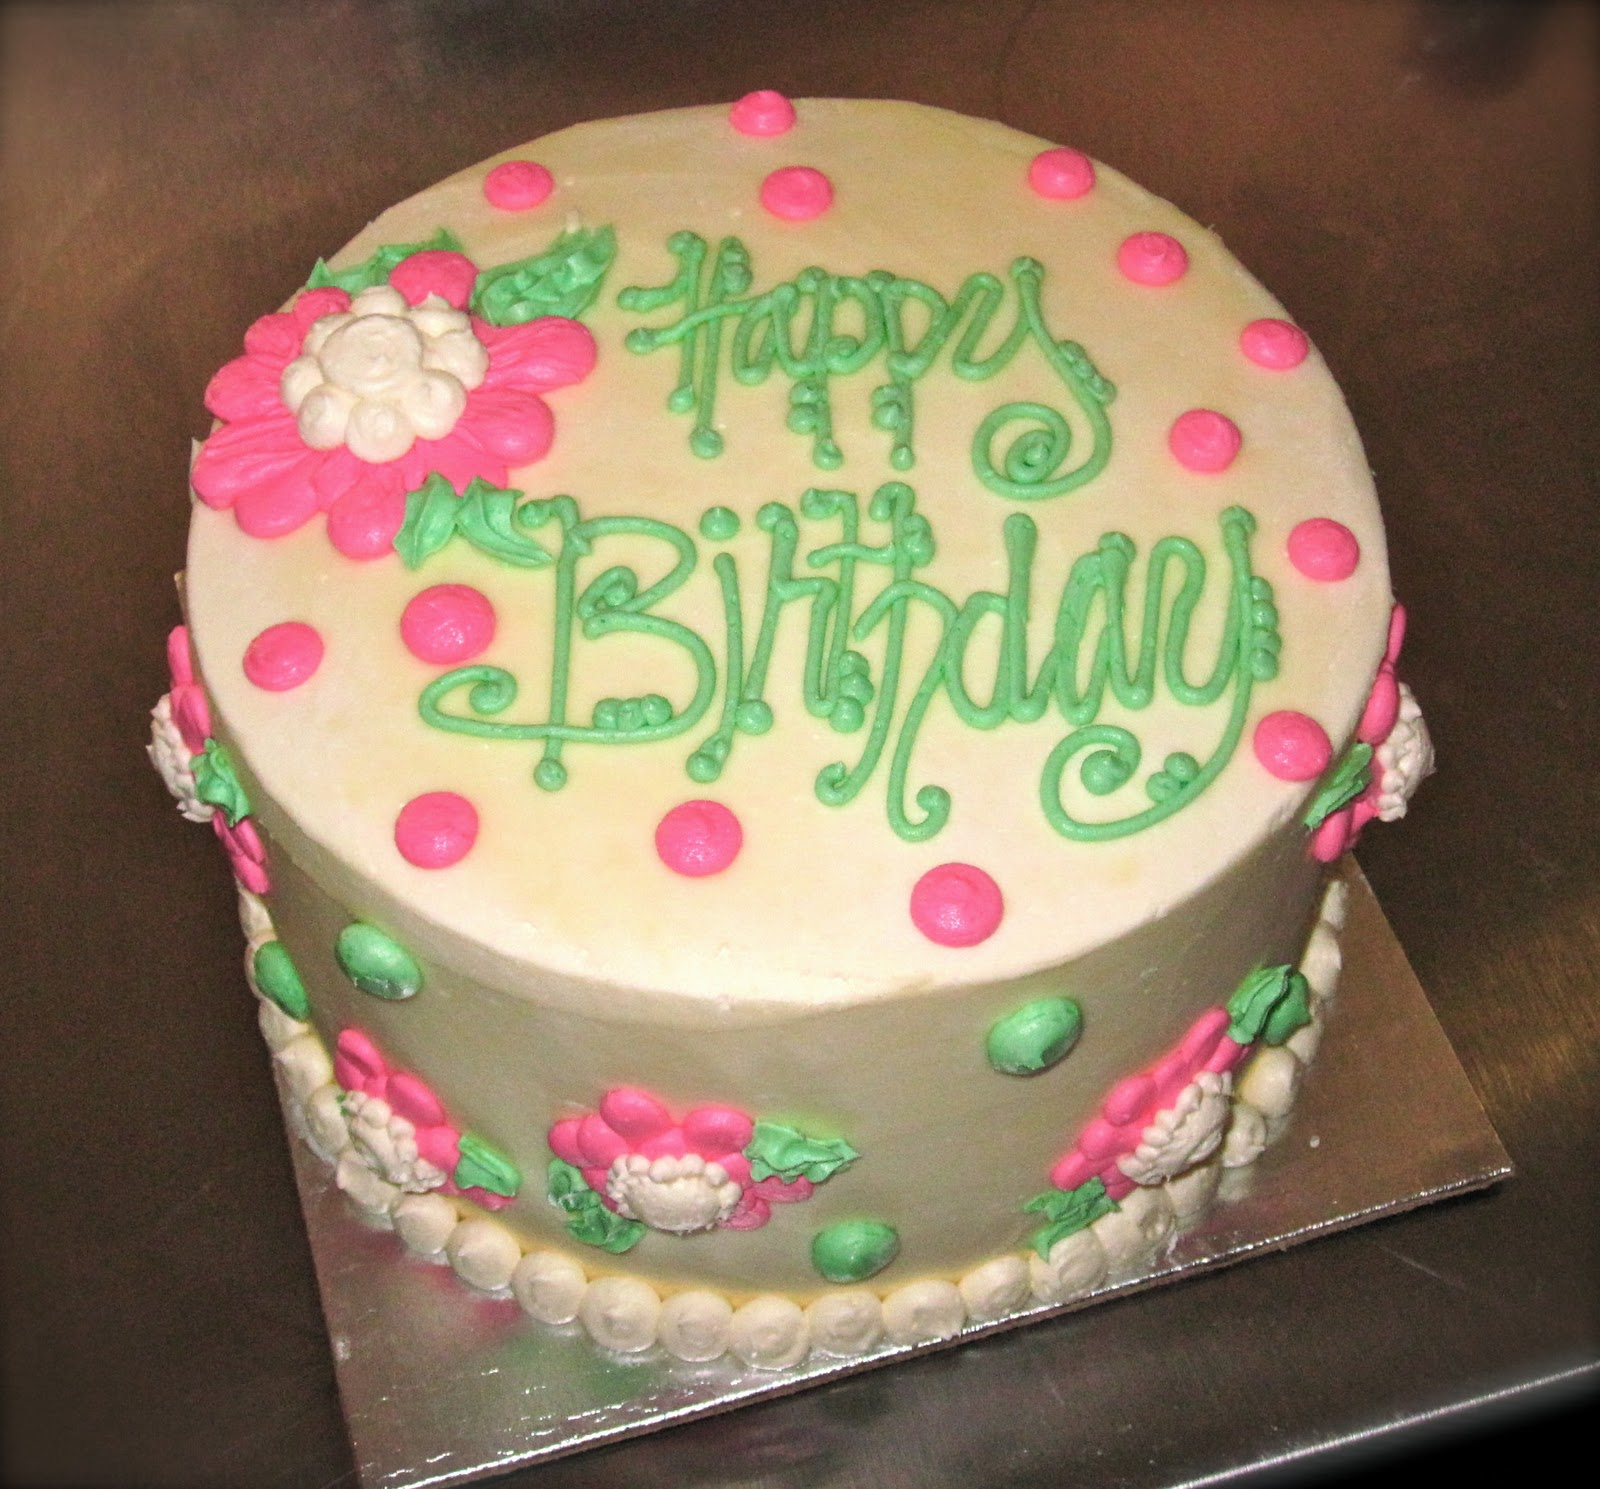 Cake Decorating Buttercream Birthday : Leah s Sweet Treats: Buttercream Birthday Cake